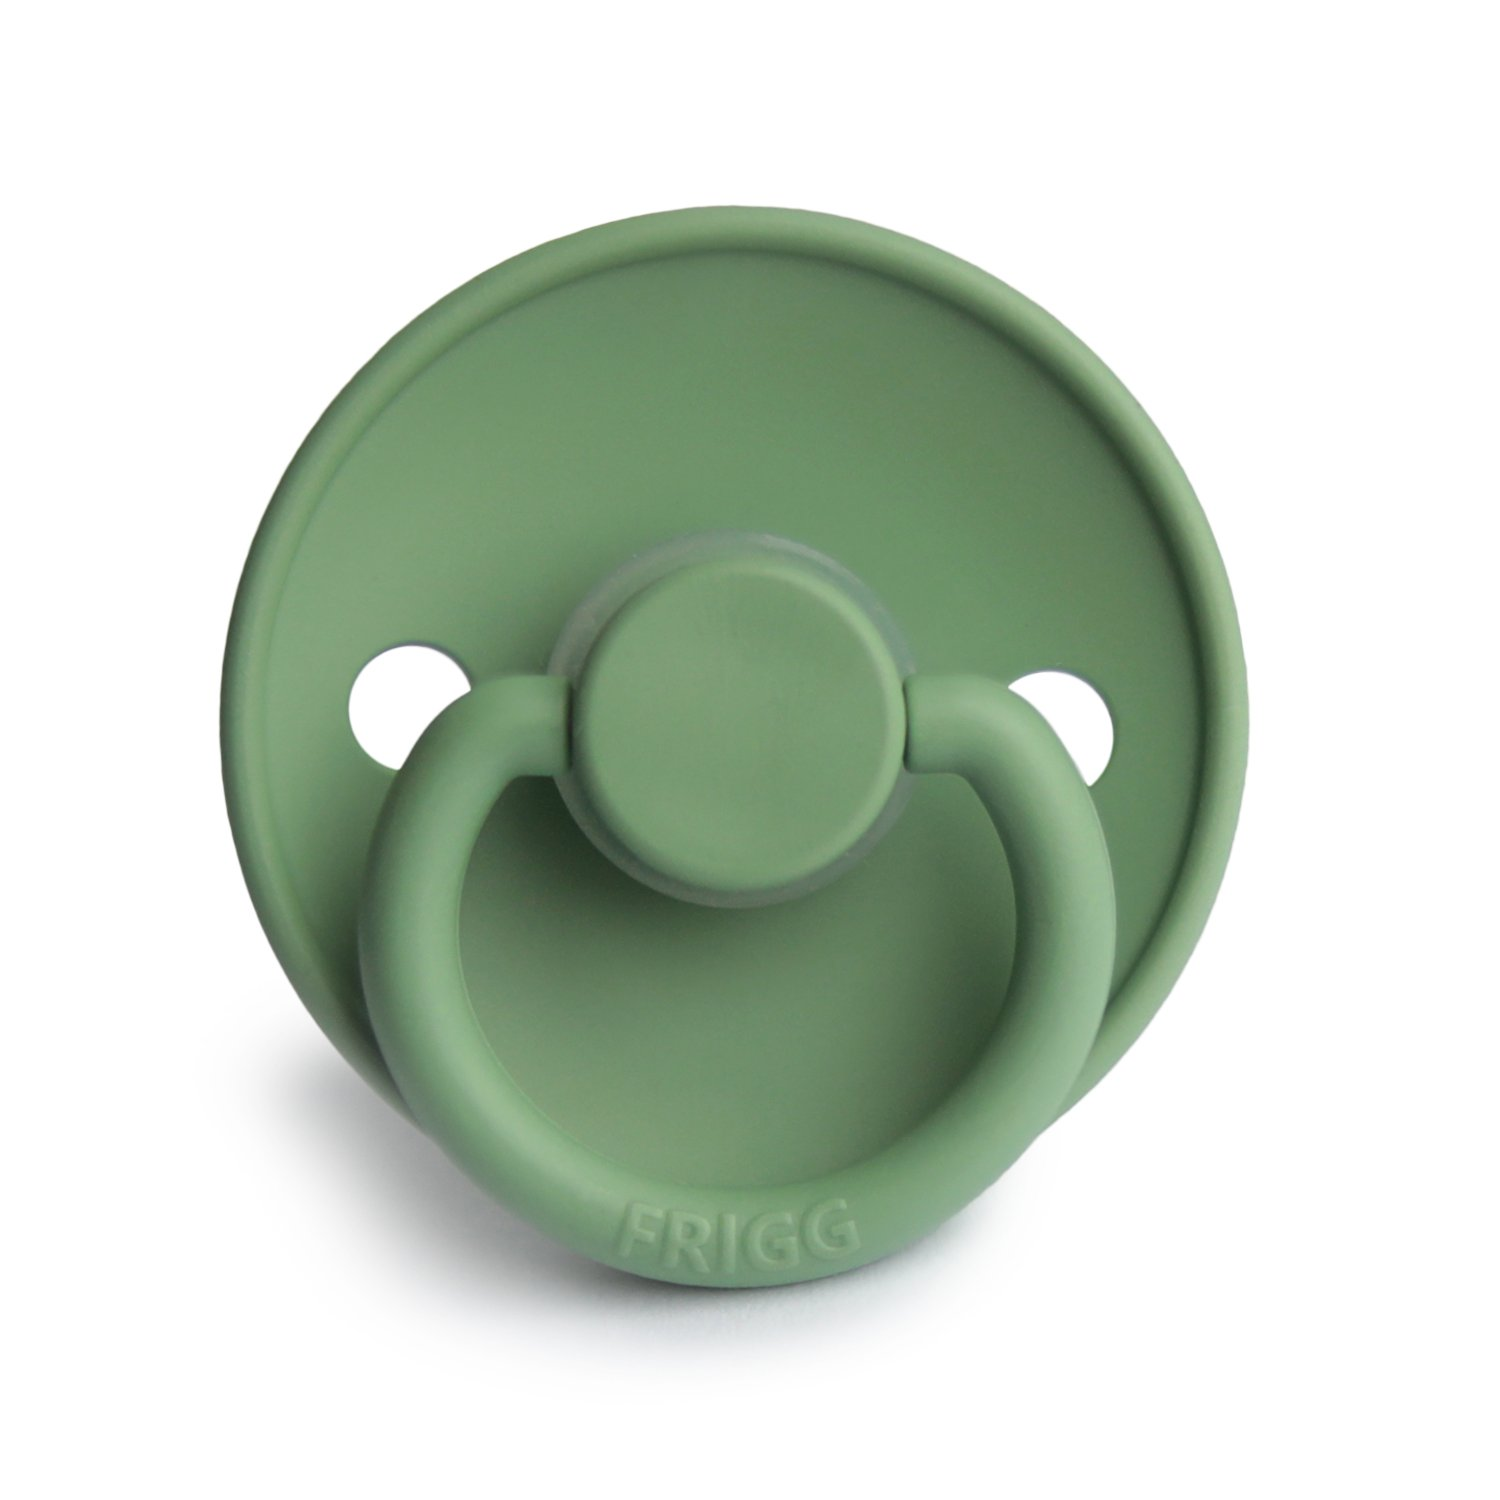 FRIGG Classic silicone - Mineral Green